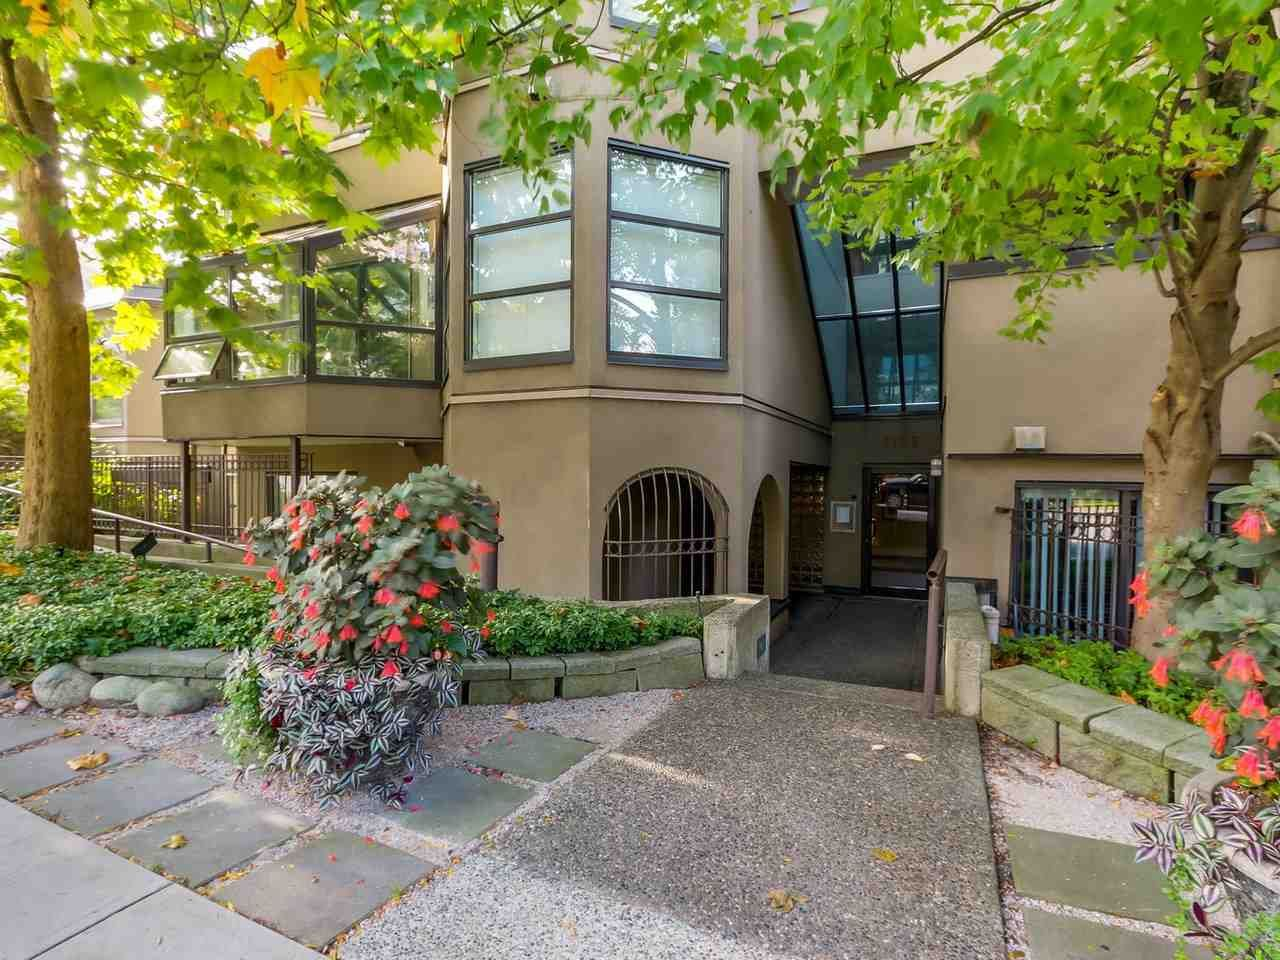 """Main Photo: 314 1106 PACIFIC Street in Vancouver: West End VW Condo for sale in """"WESTGATE LANDING"""" (Vancouver West)  : MLS®# R2171131"""